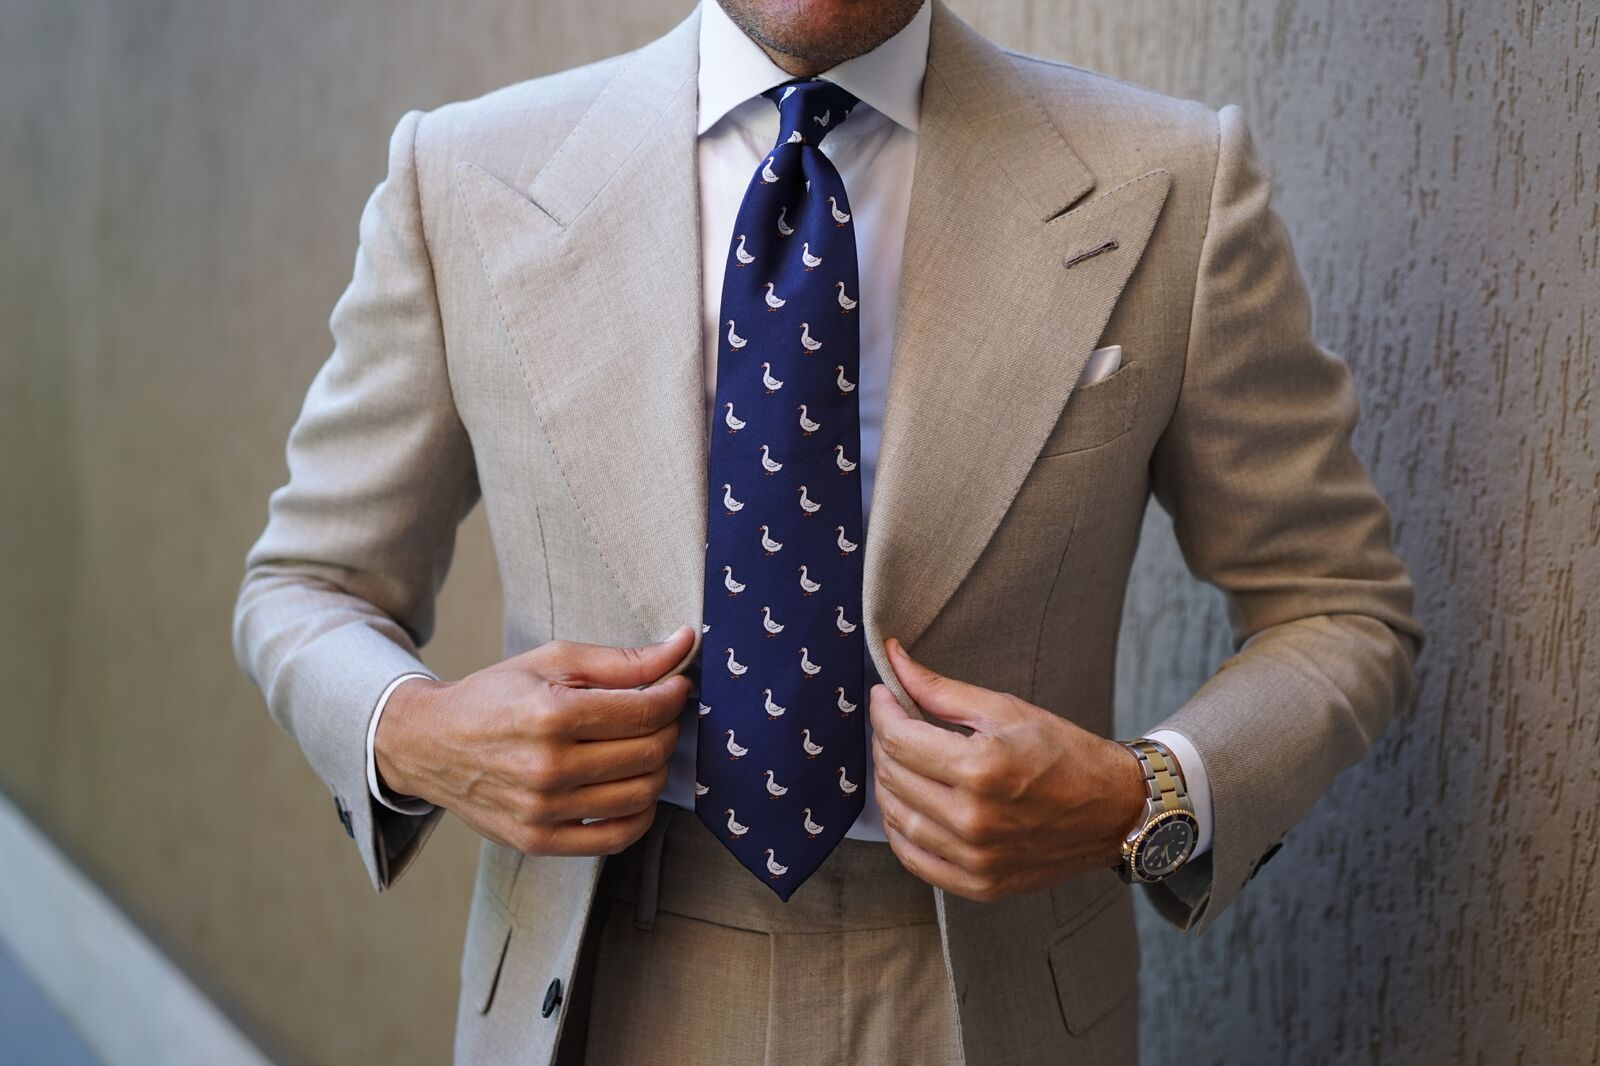 Suit with Collar Stays